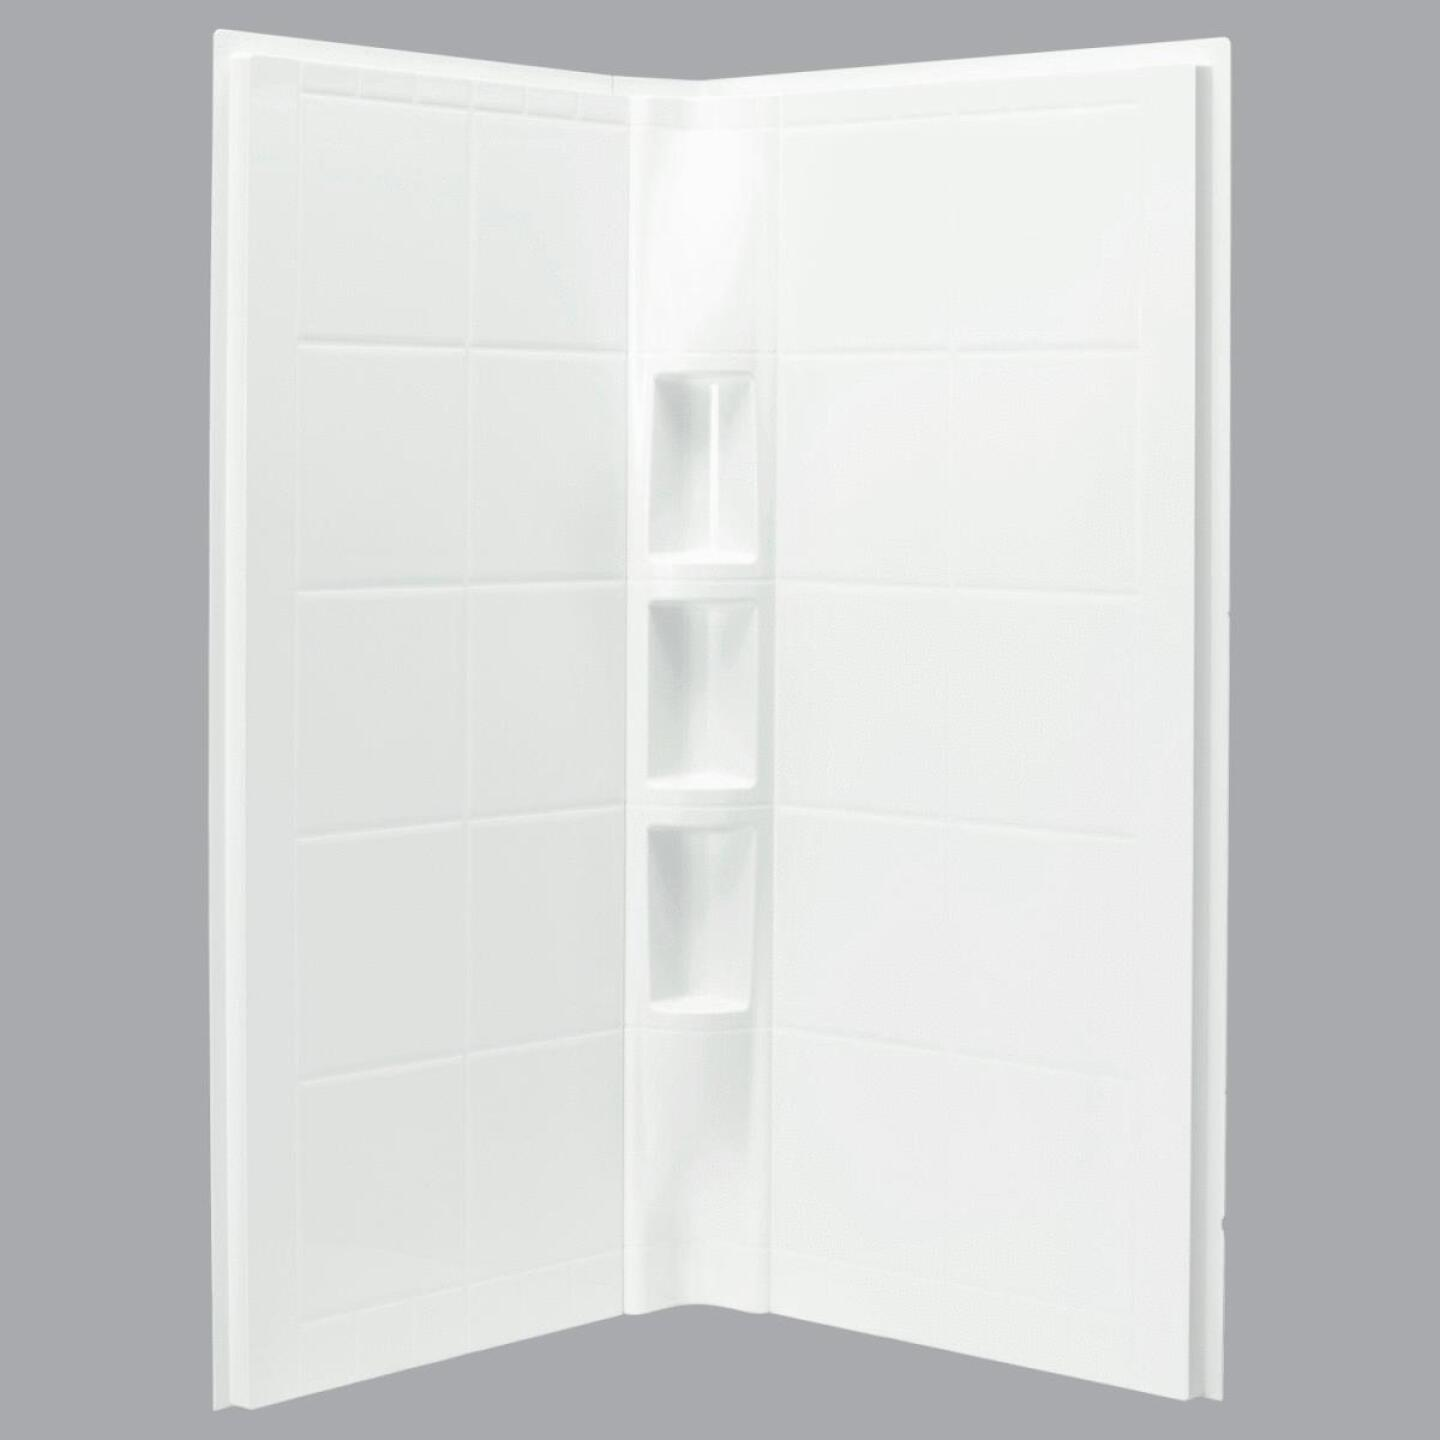 Sterling 2-Piece 39 In. W. x 79-1/8 In. H. x 39 In. D. White Shower Wall Set Image 1